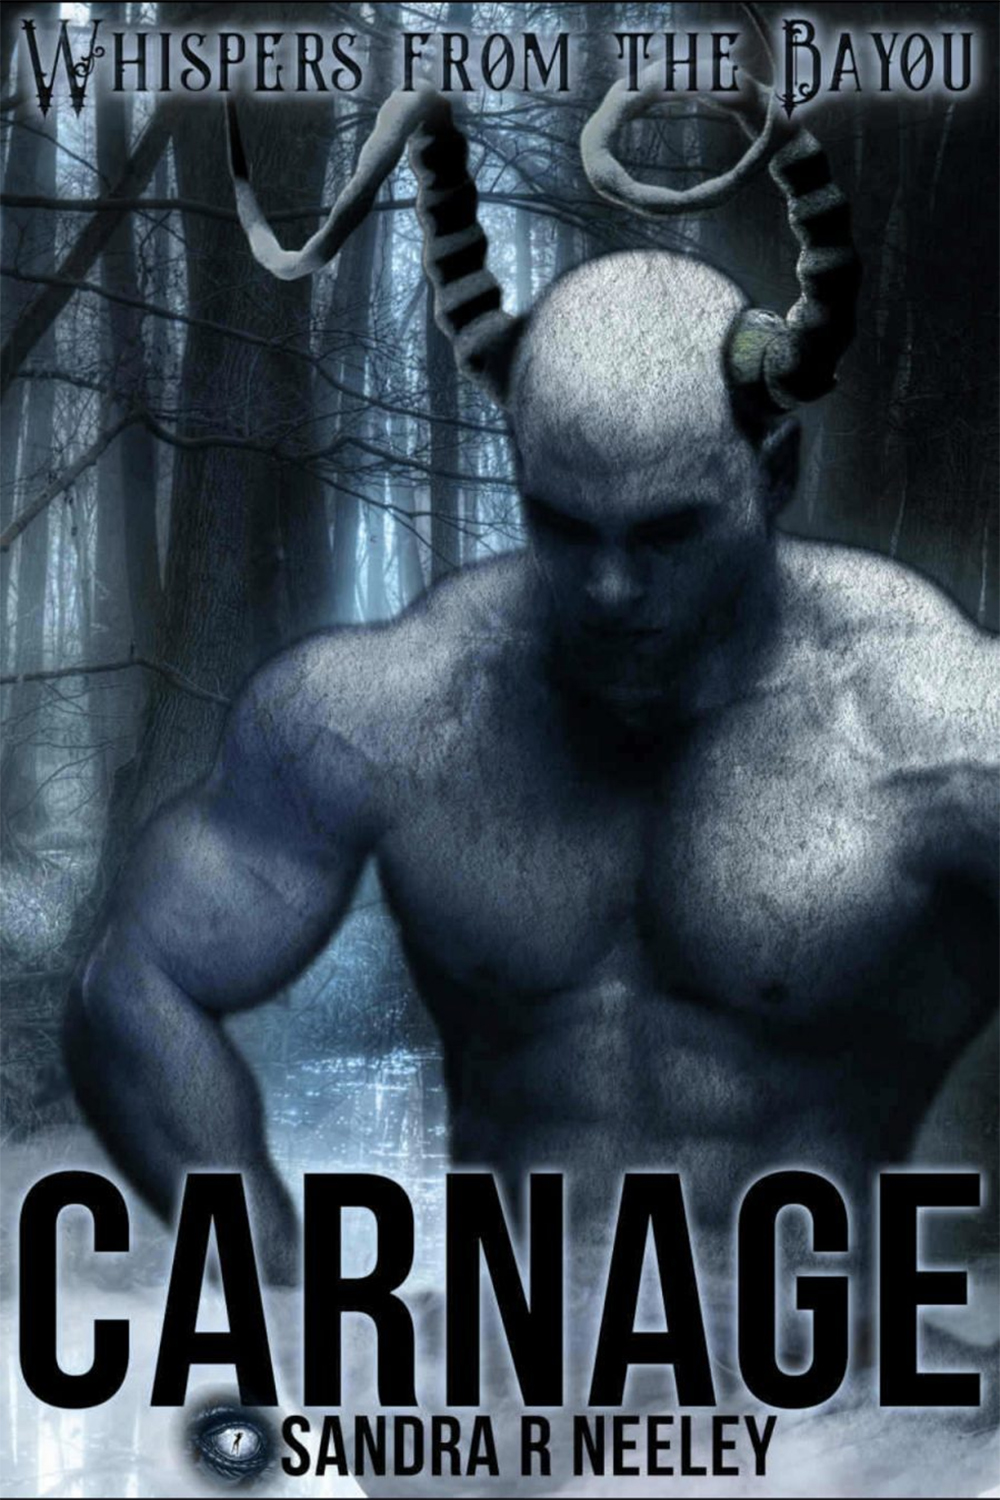 S1 E15 Carnage by Sandra R. Neeley